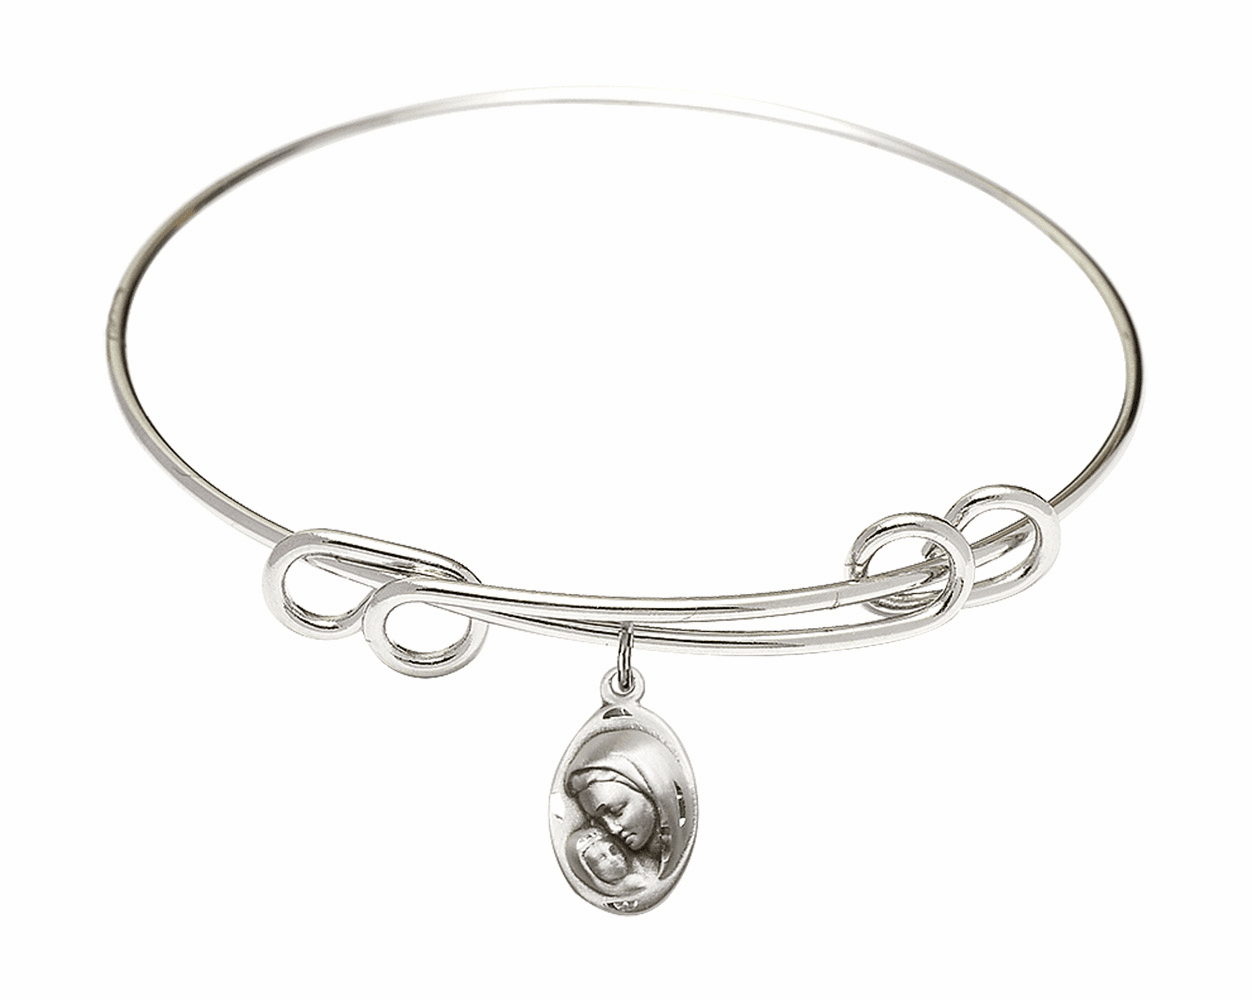 Round Double Loop Bangle Bracelet w/Oval Madonna and Childl Sterling Silver Charm by Bliss Mfg